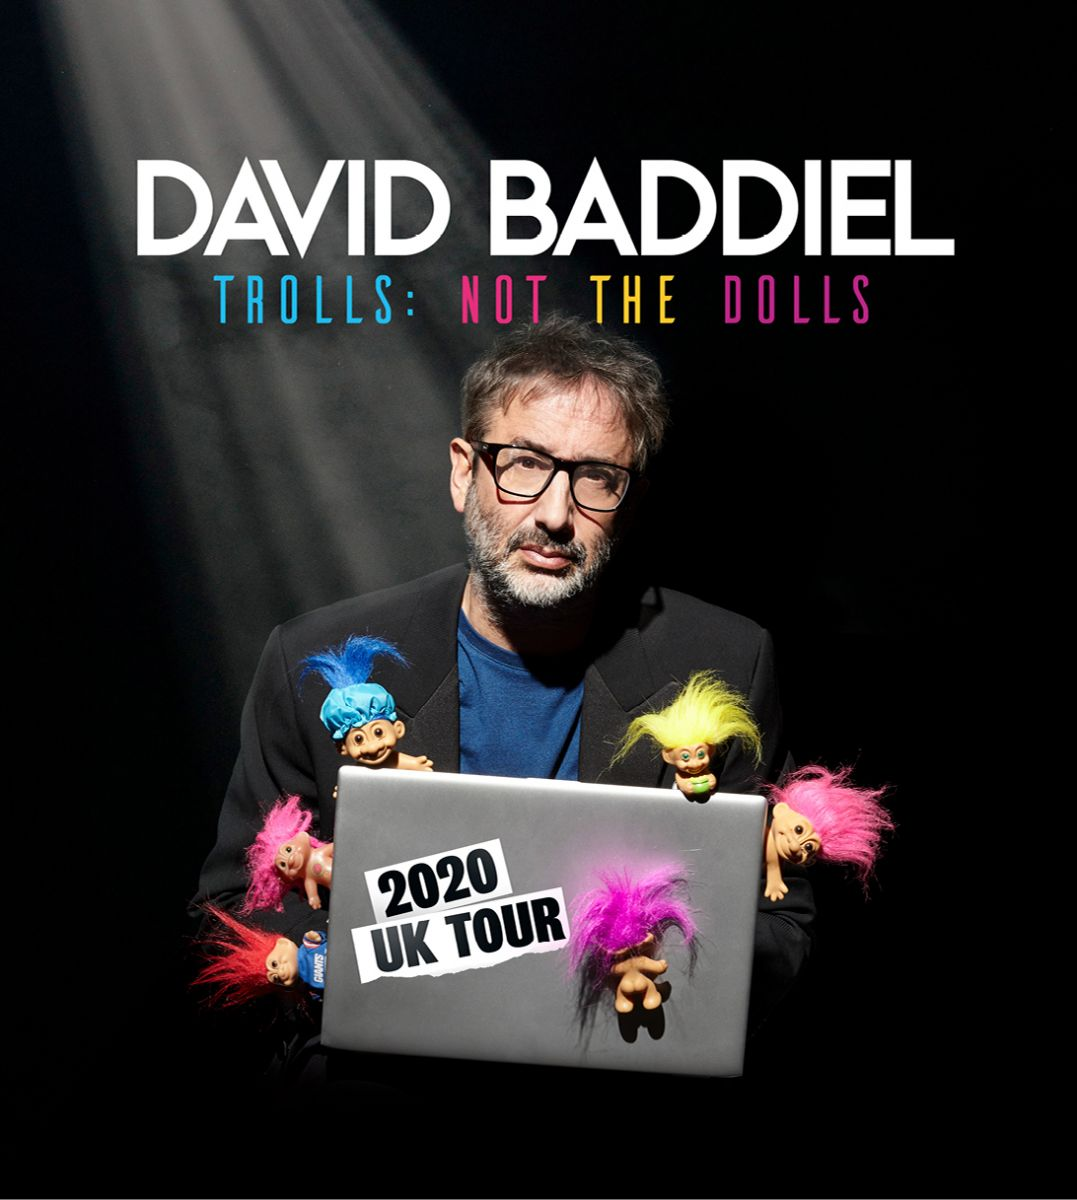 David Baddiel: Trolls Not The Dolls (postponed from Sun 11 Oct)